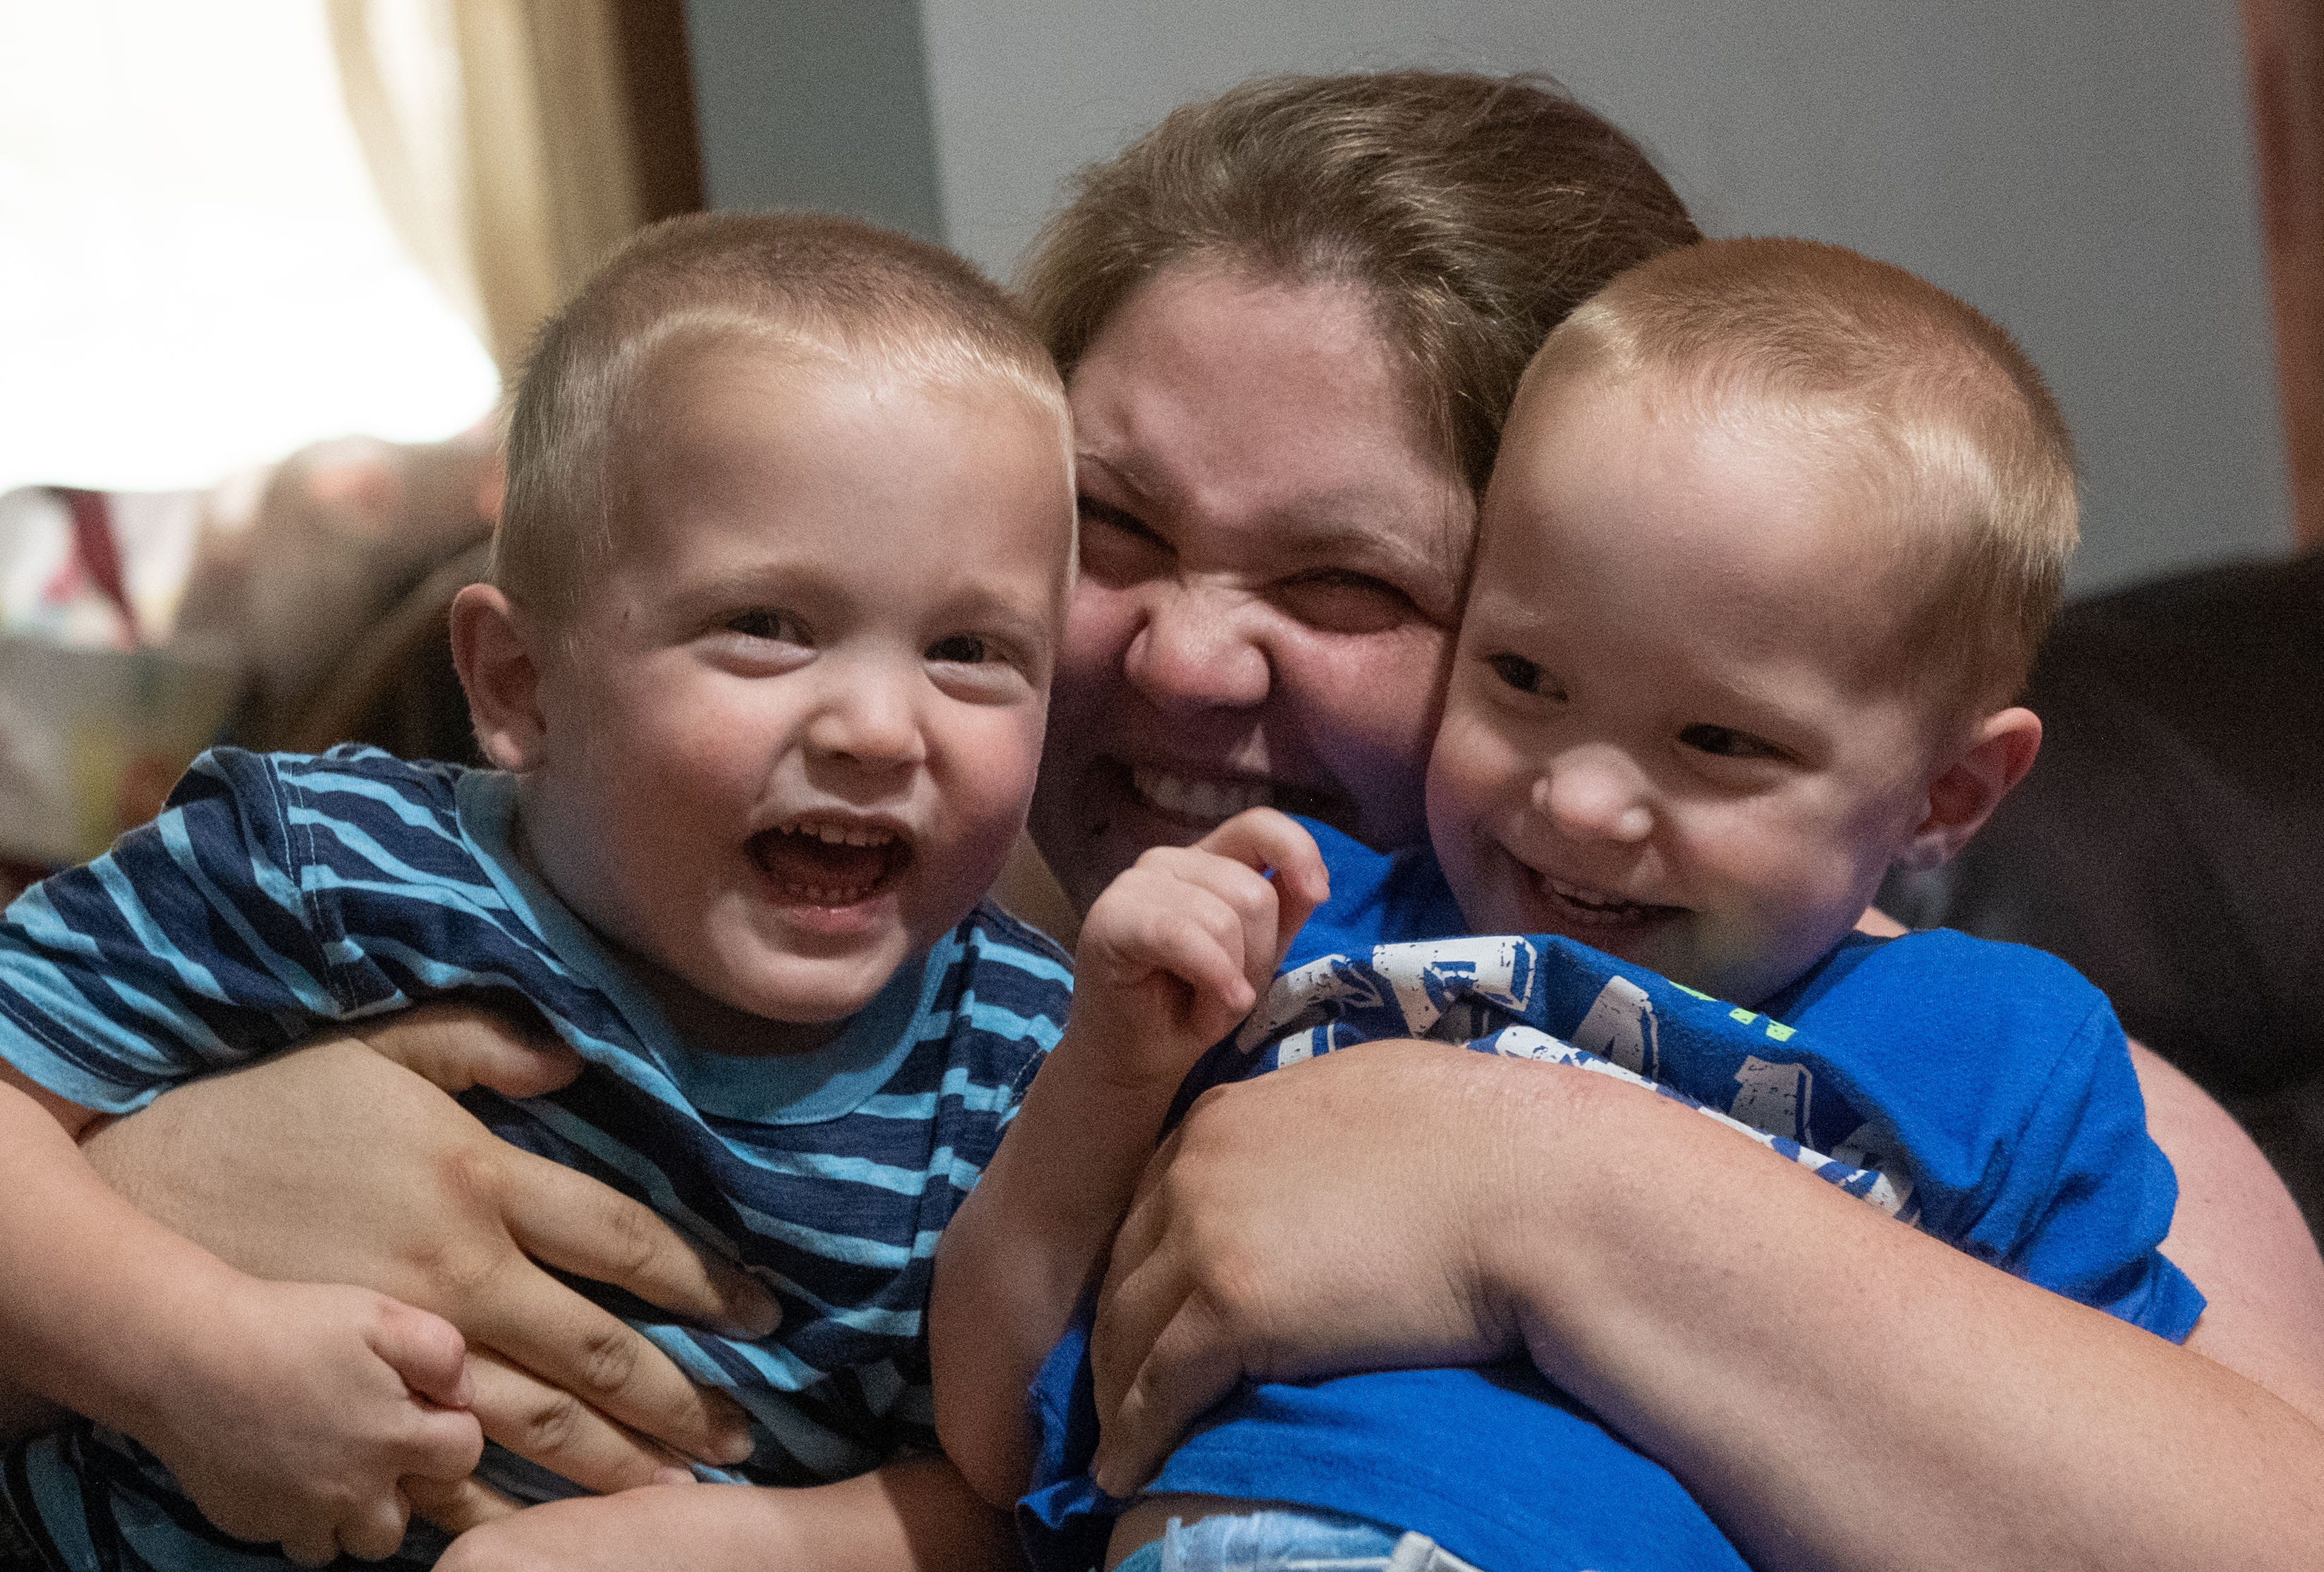 Amanda Cree and her 3-year-old twin boys Michael (right) and Alexander (left) stay optimistic and look towards life after the pandemic, July 8, 2020.